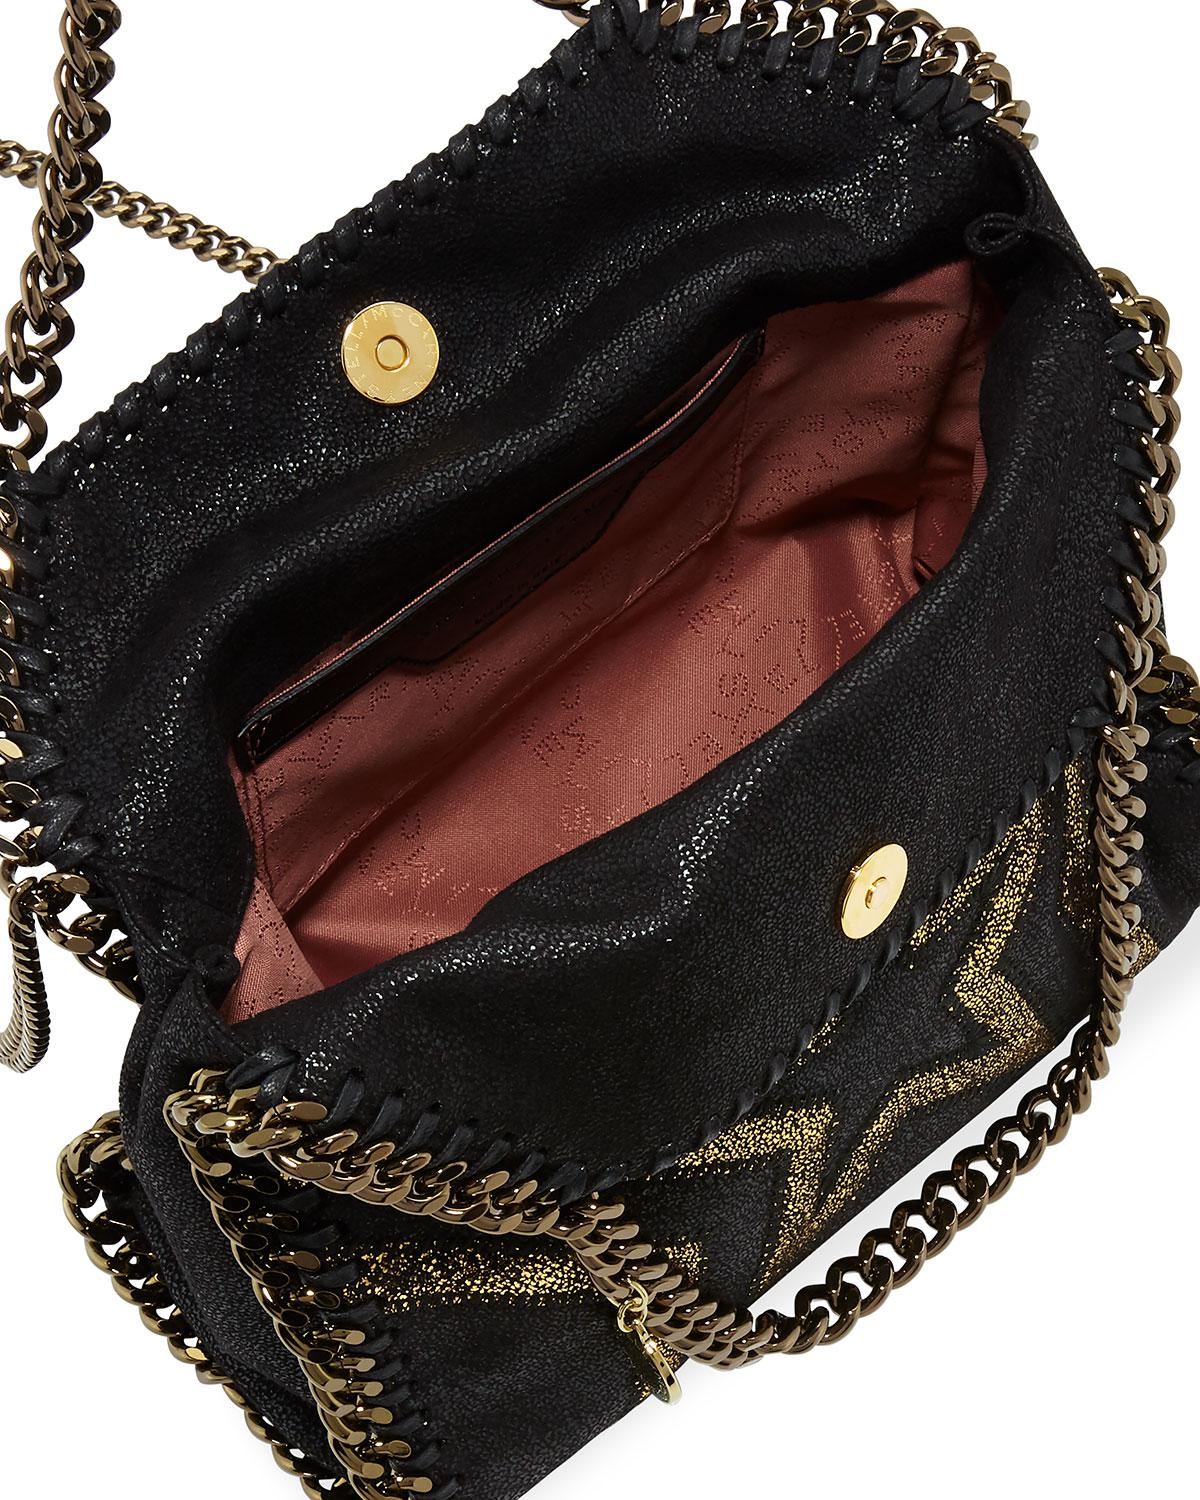 6443a0226d3b Gallery. Previously sold at  Bergdorf Goodman · Women s Velvet Shoulder Bags  ...